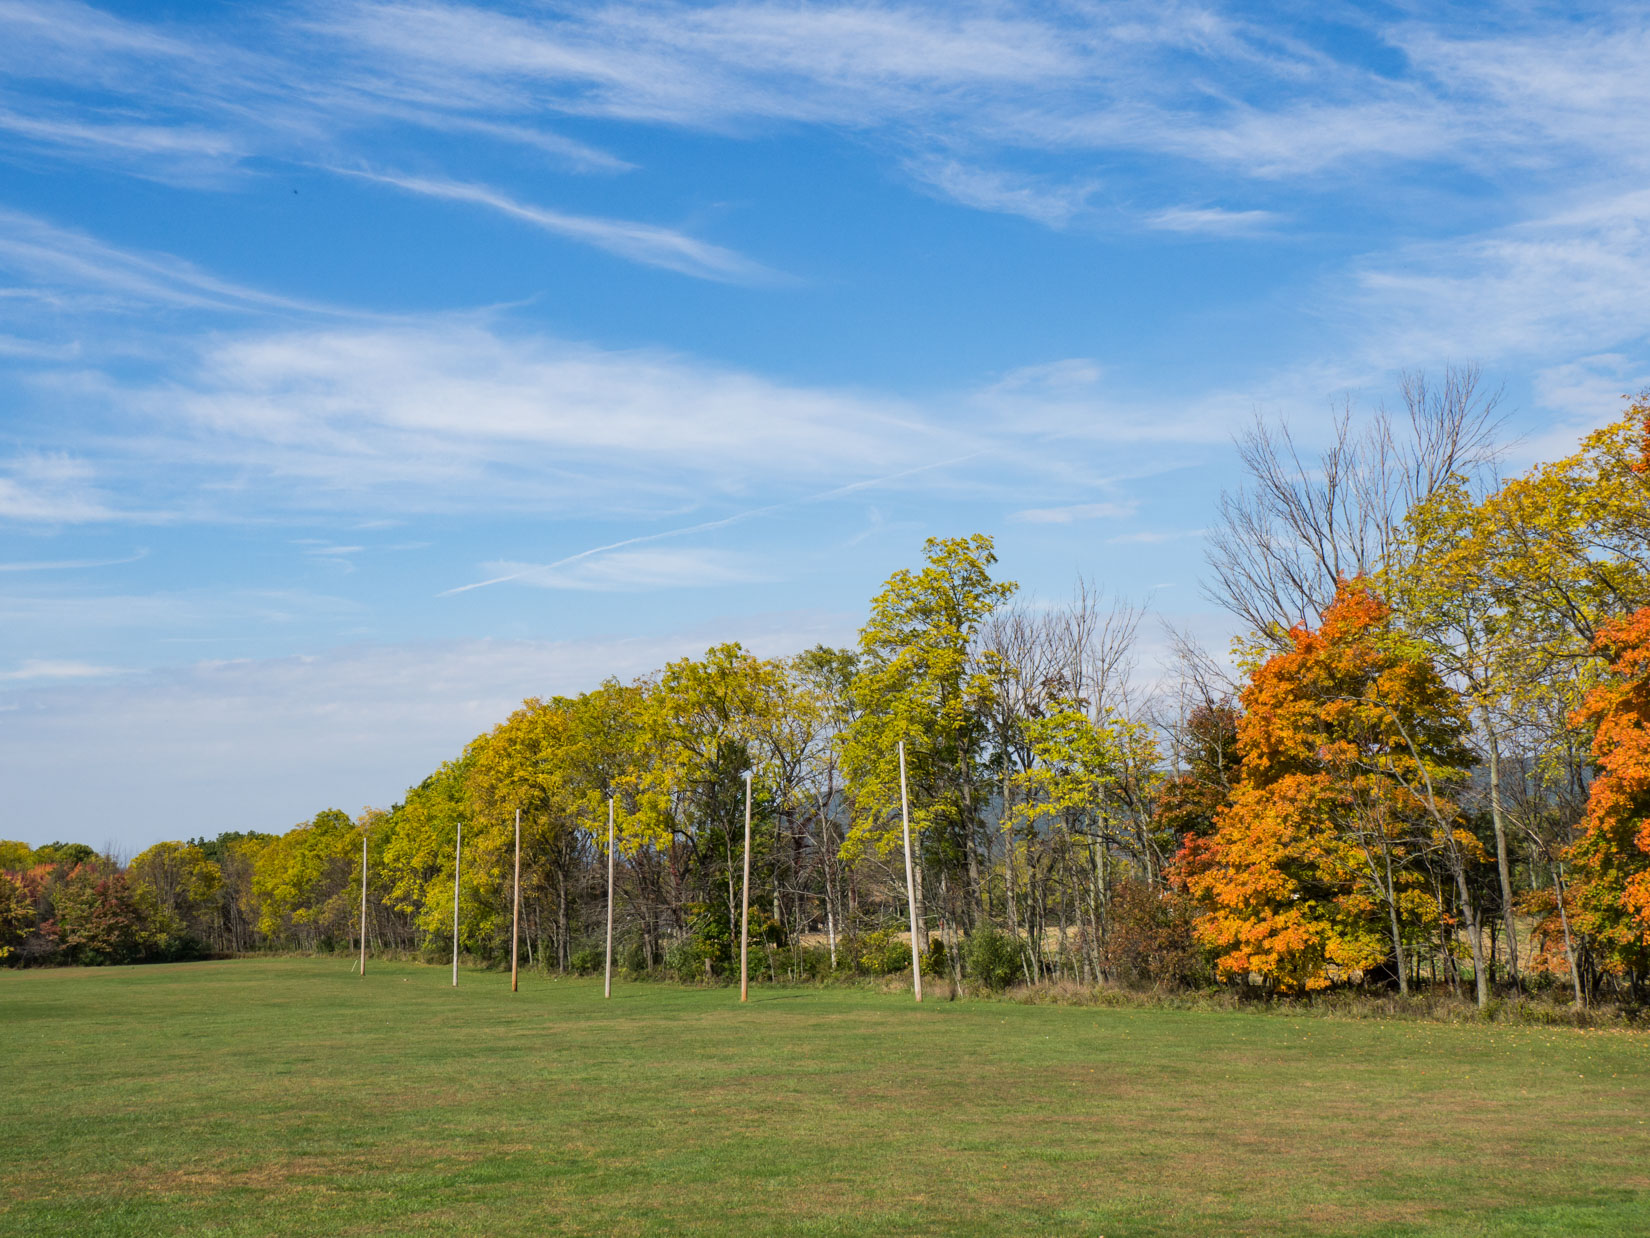 Field and Trees with Leaves Over Blue Sky – FOCA